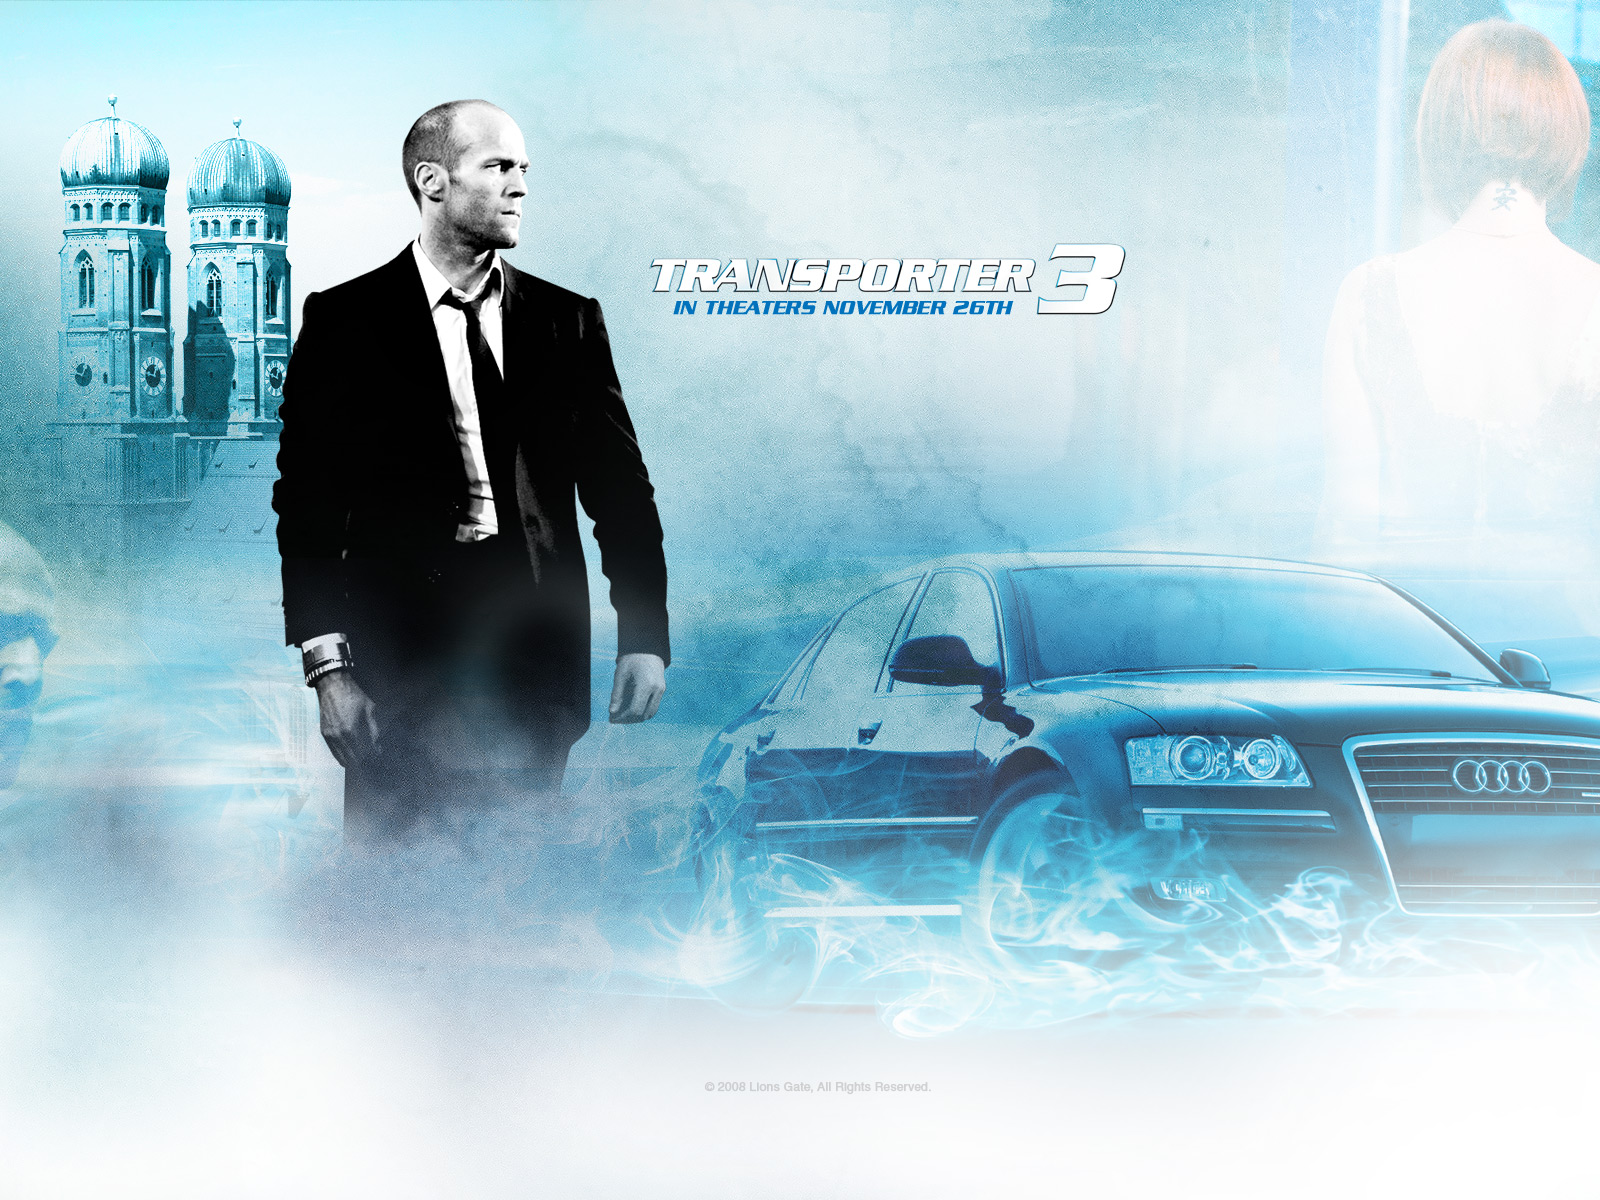 Search & download more from file hosting: Transporter 3 , Movies ...